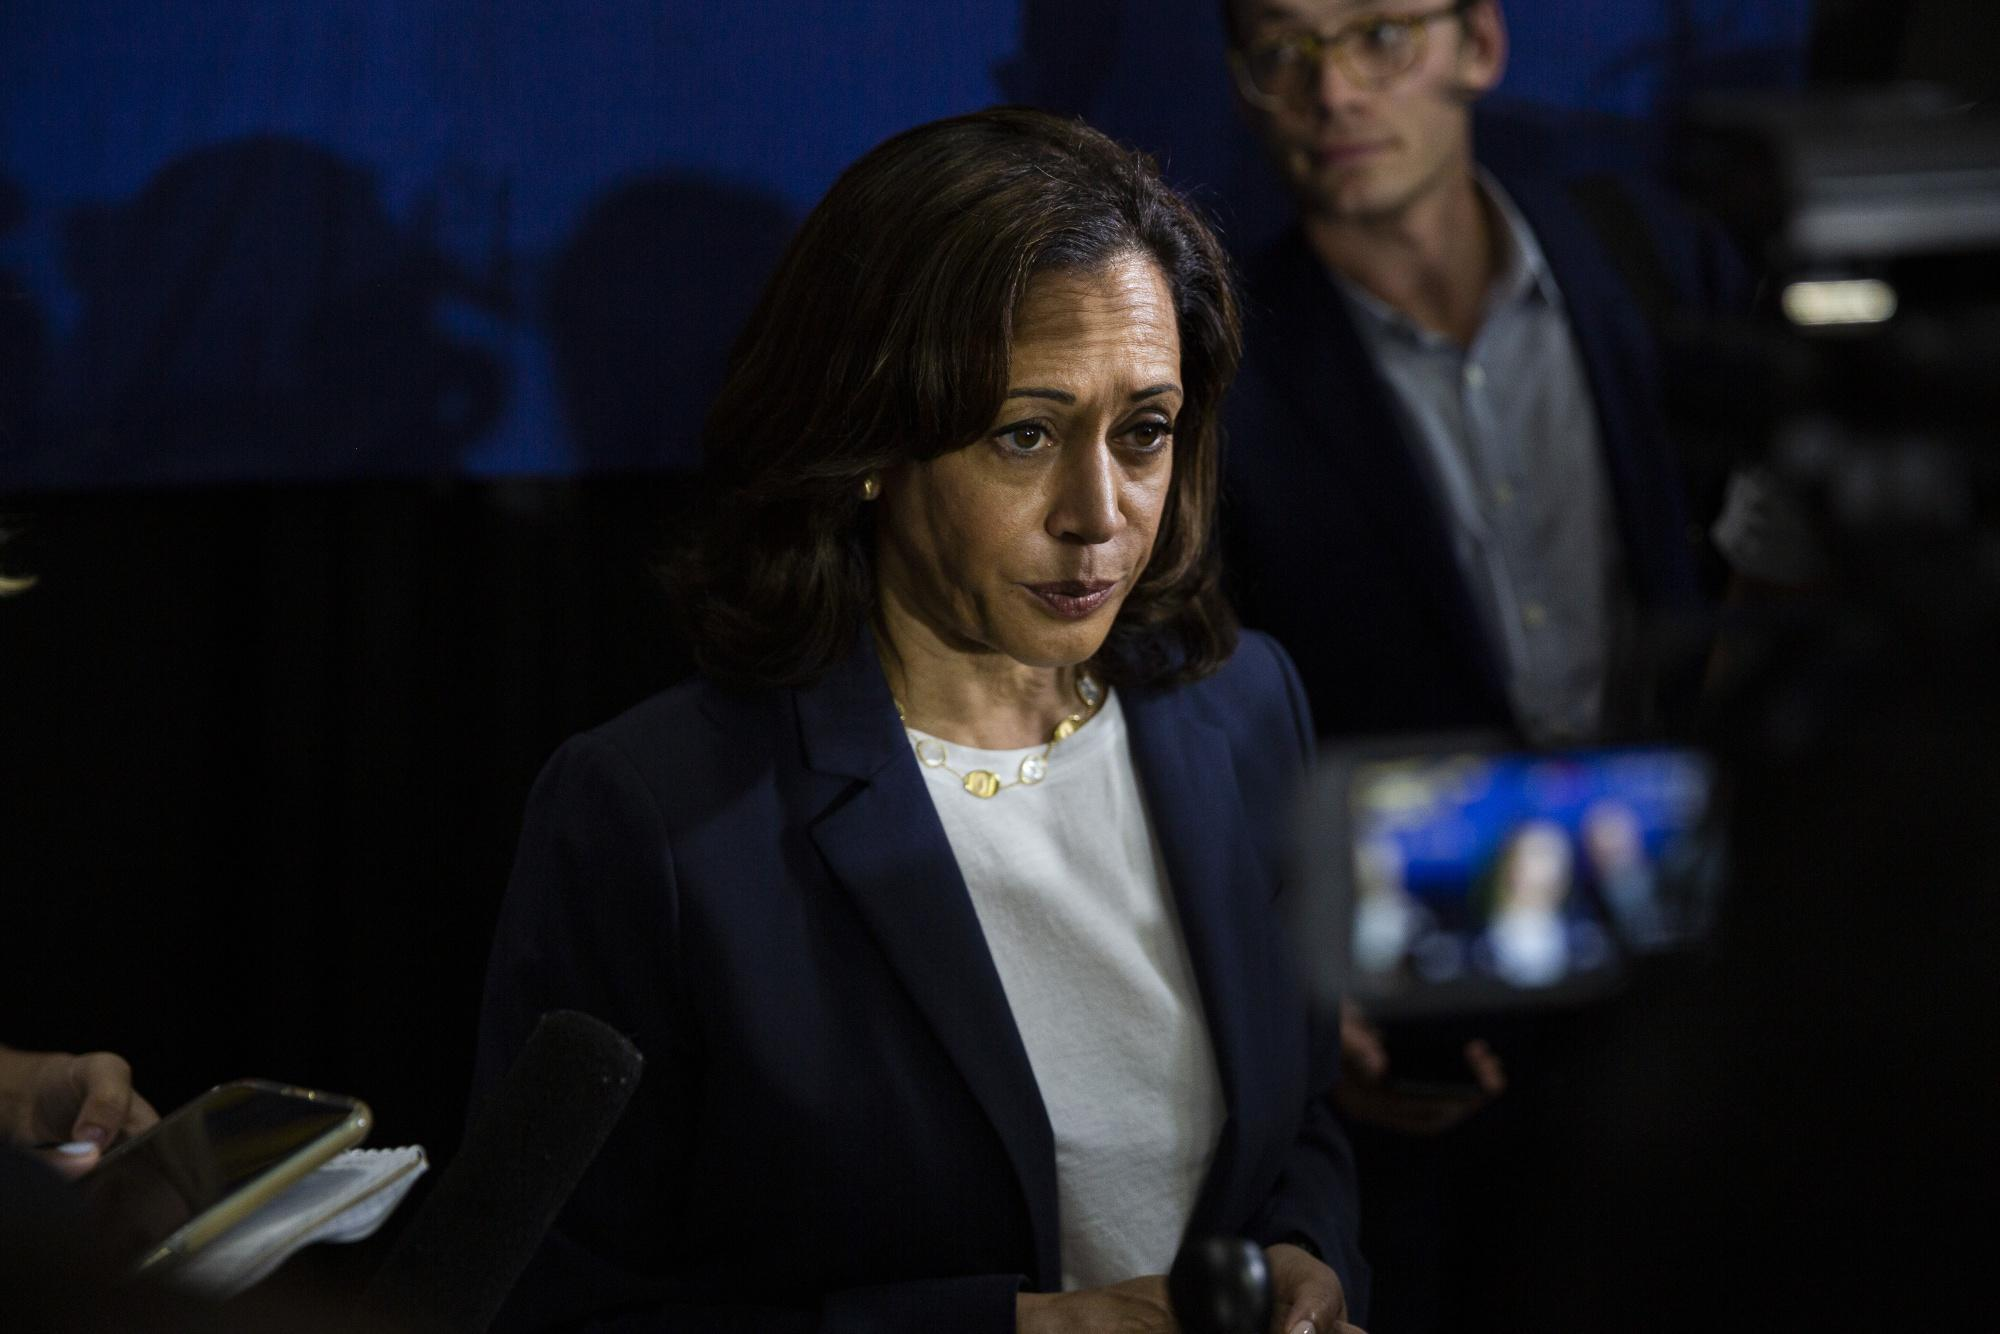 Kamala Harris: Trump 'Needs to Go Back to Where He Came From'